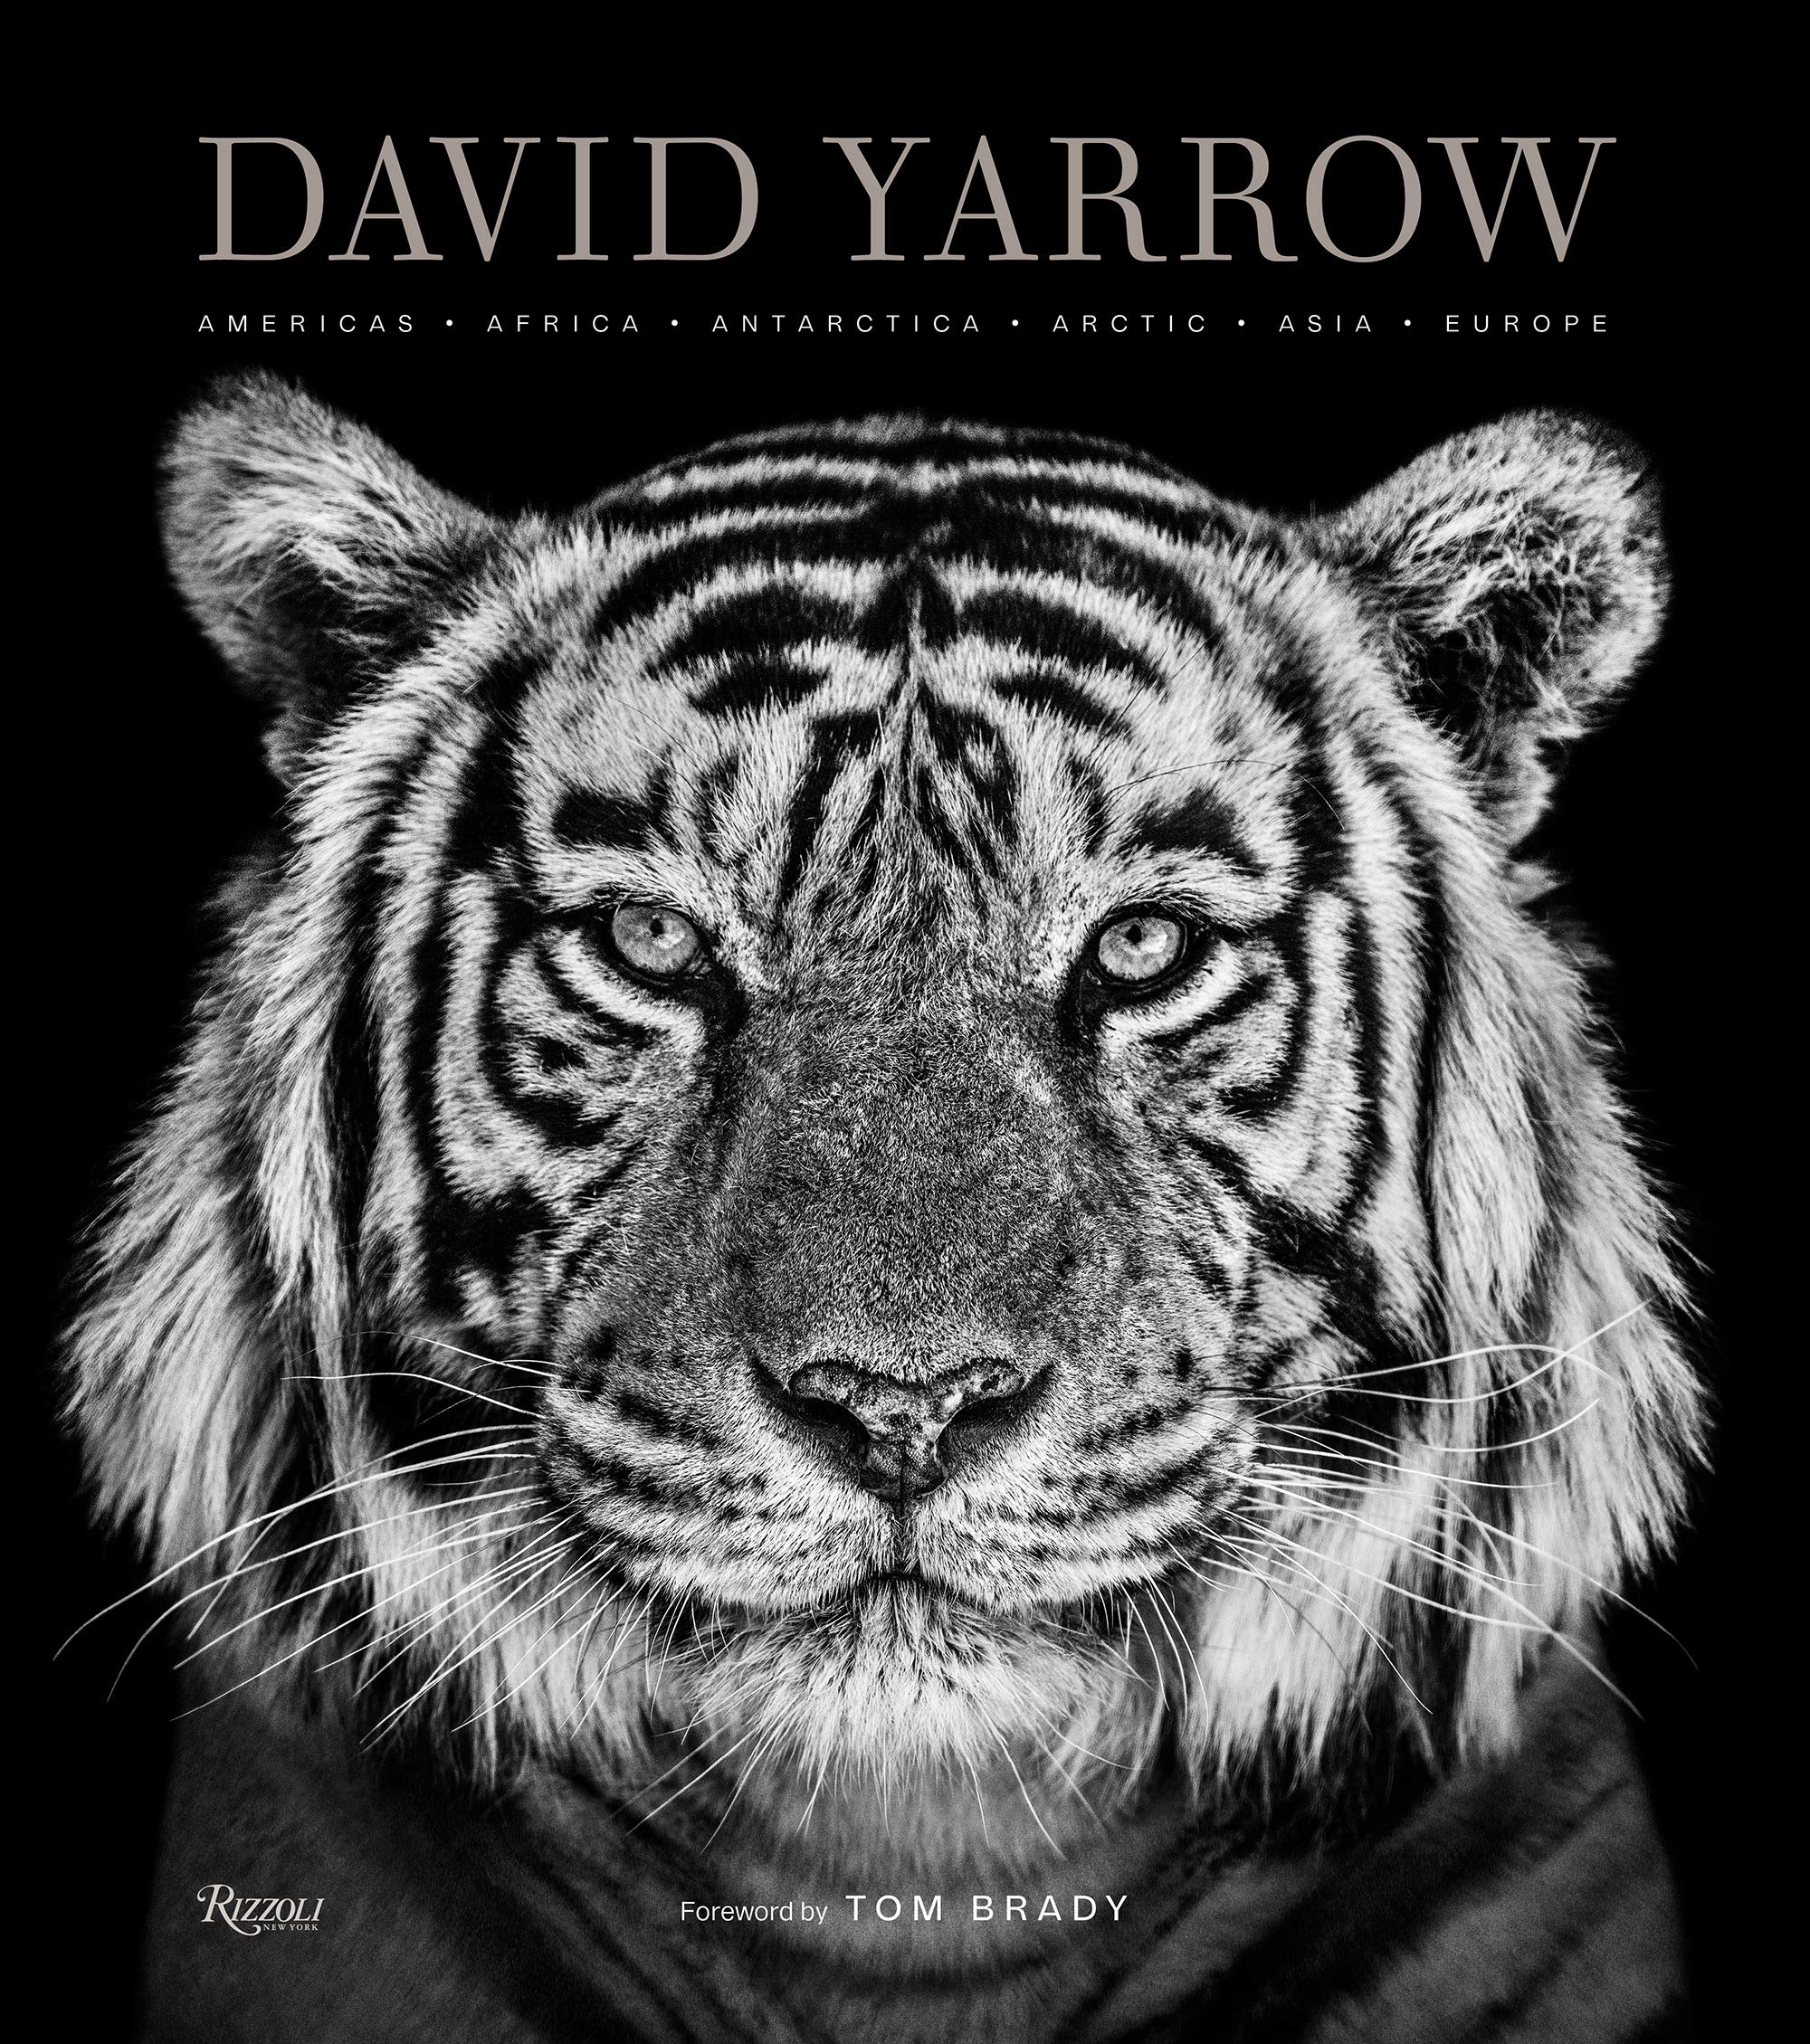 David Yarrow Photography: Americas Africa Antarctica Arctic Asia Europe by Rizzoli